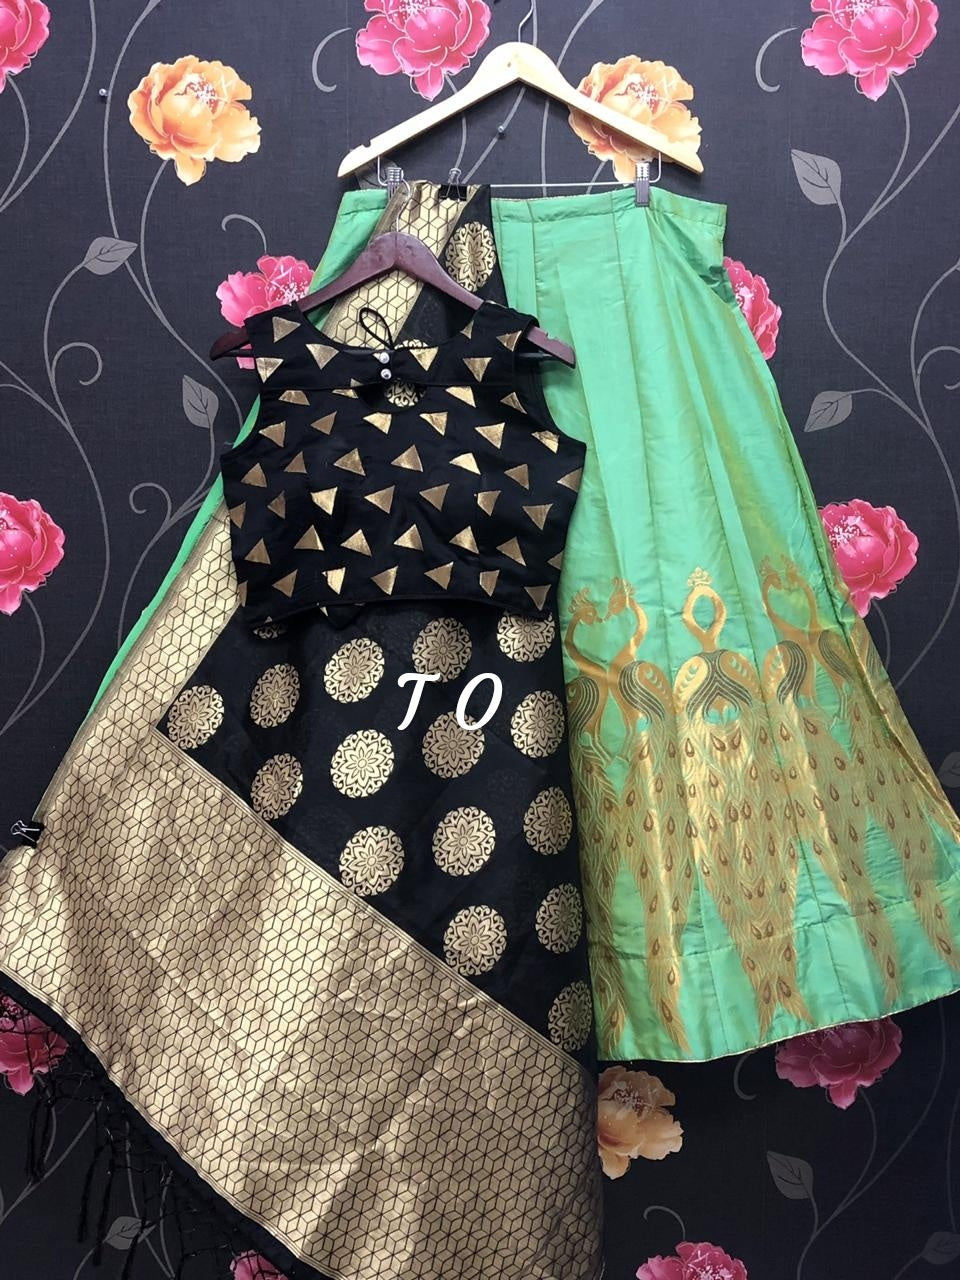 Green Banarasi Brocade Silk Lehenga Yellow with Black Stylish Choli